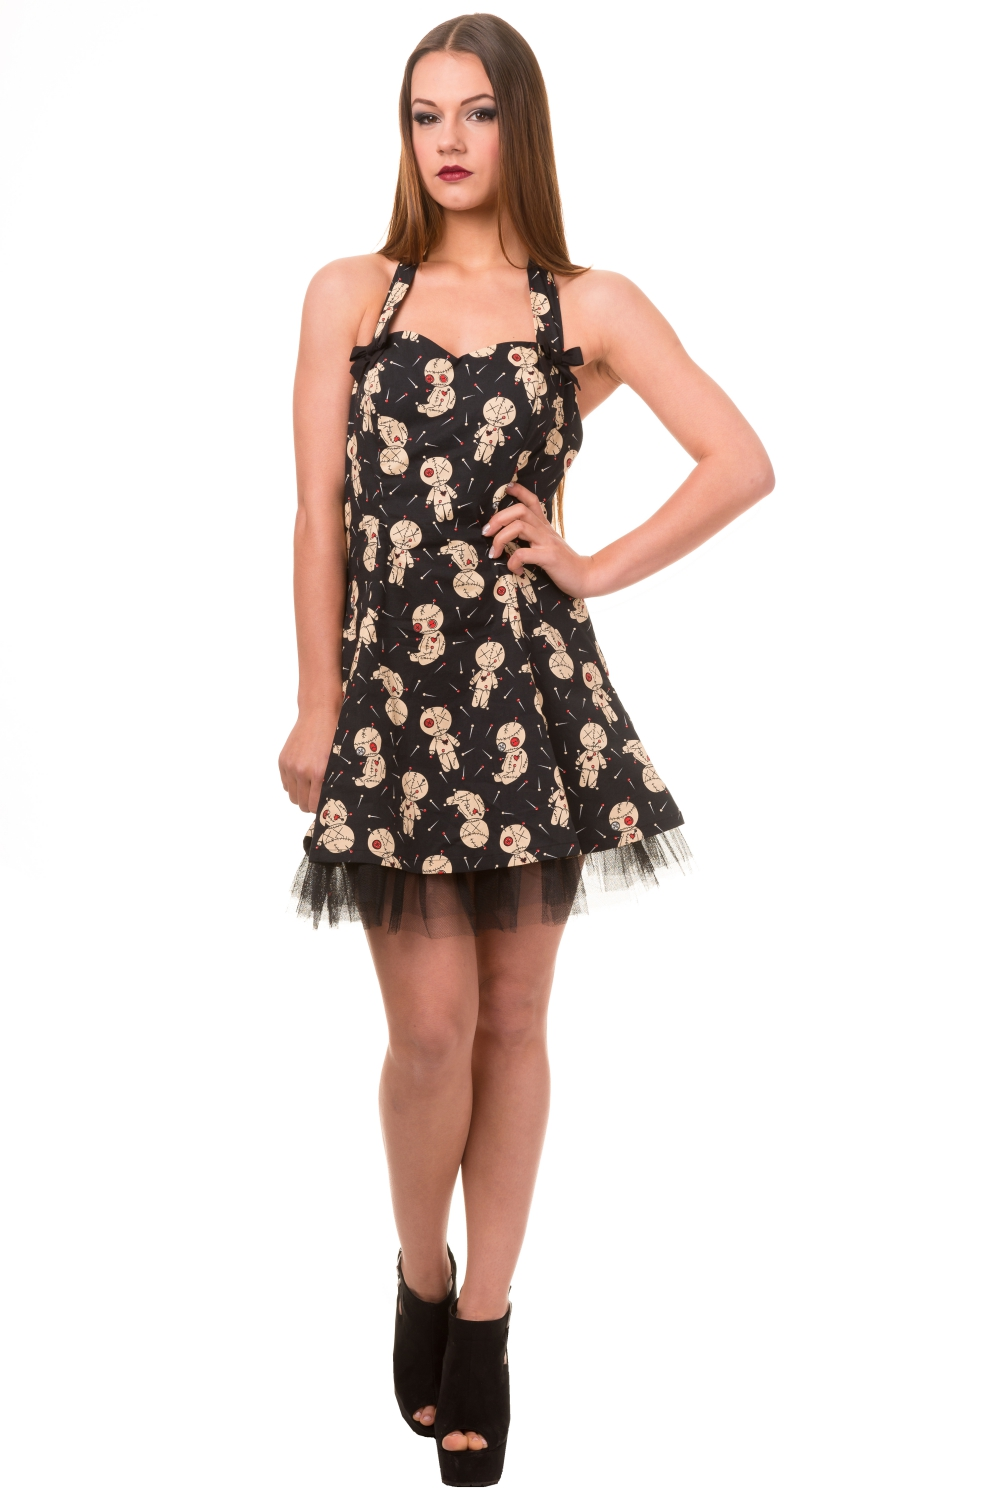 Banned Distractions Goth Voodoo Dolls Mini Dress